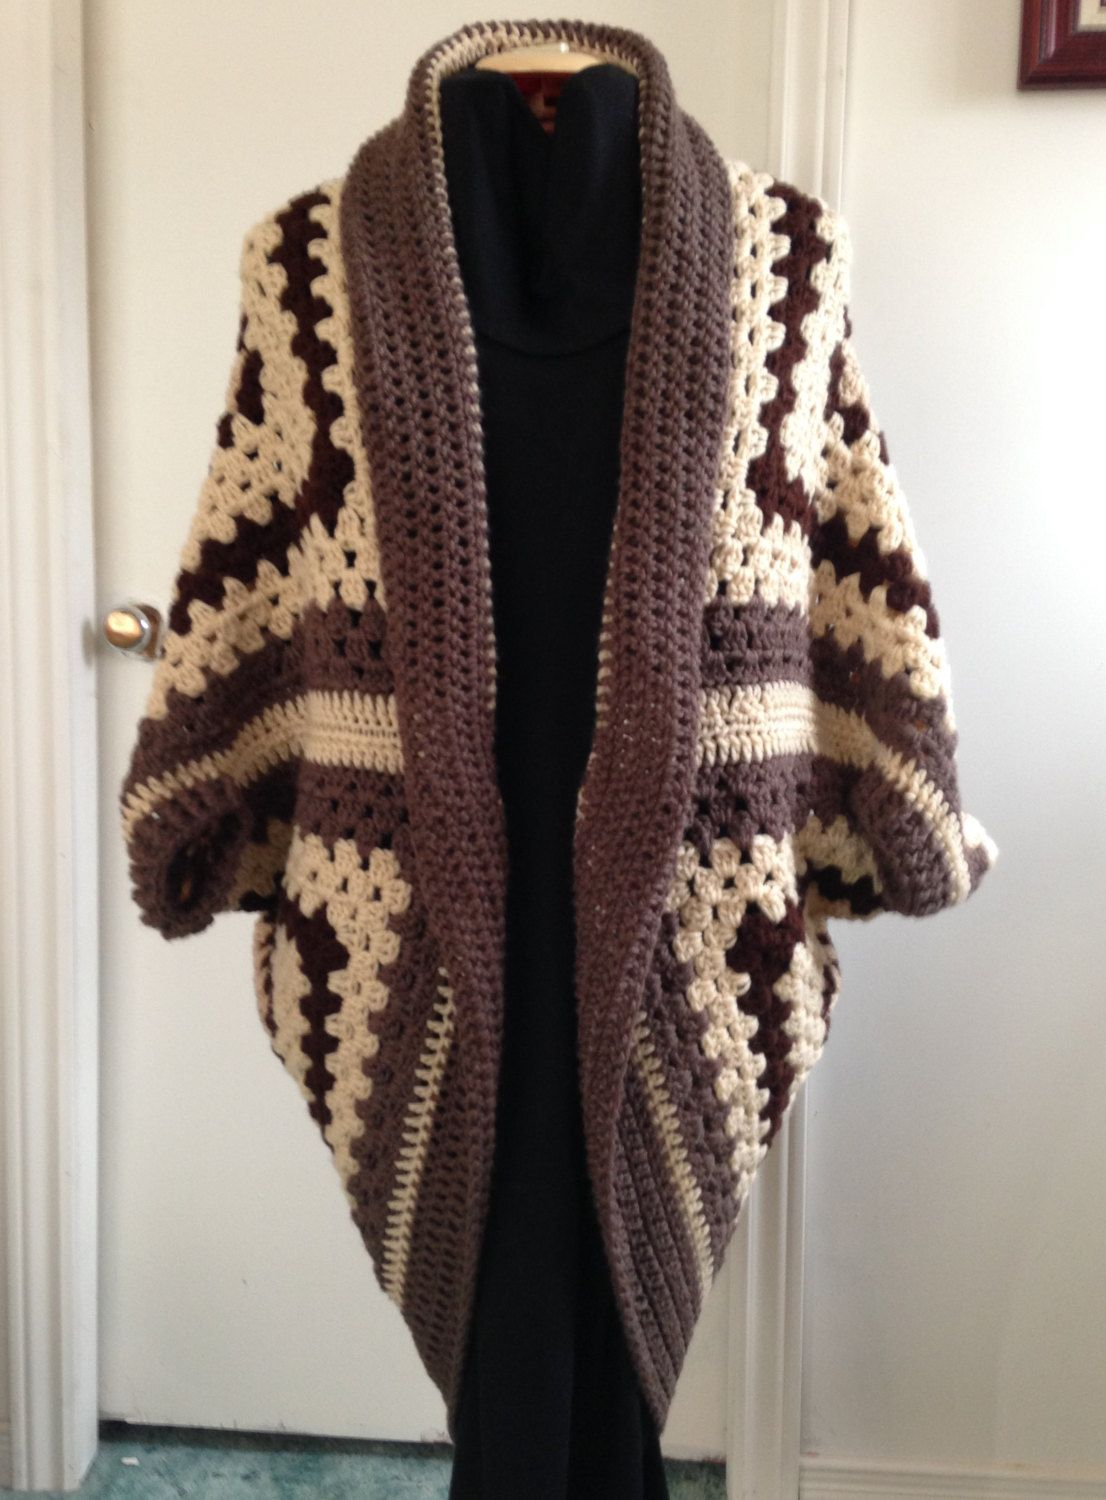 Crochet Granny Square Cocoon Sweater Cardigan Shrug in Brown and ...